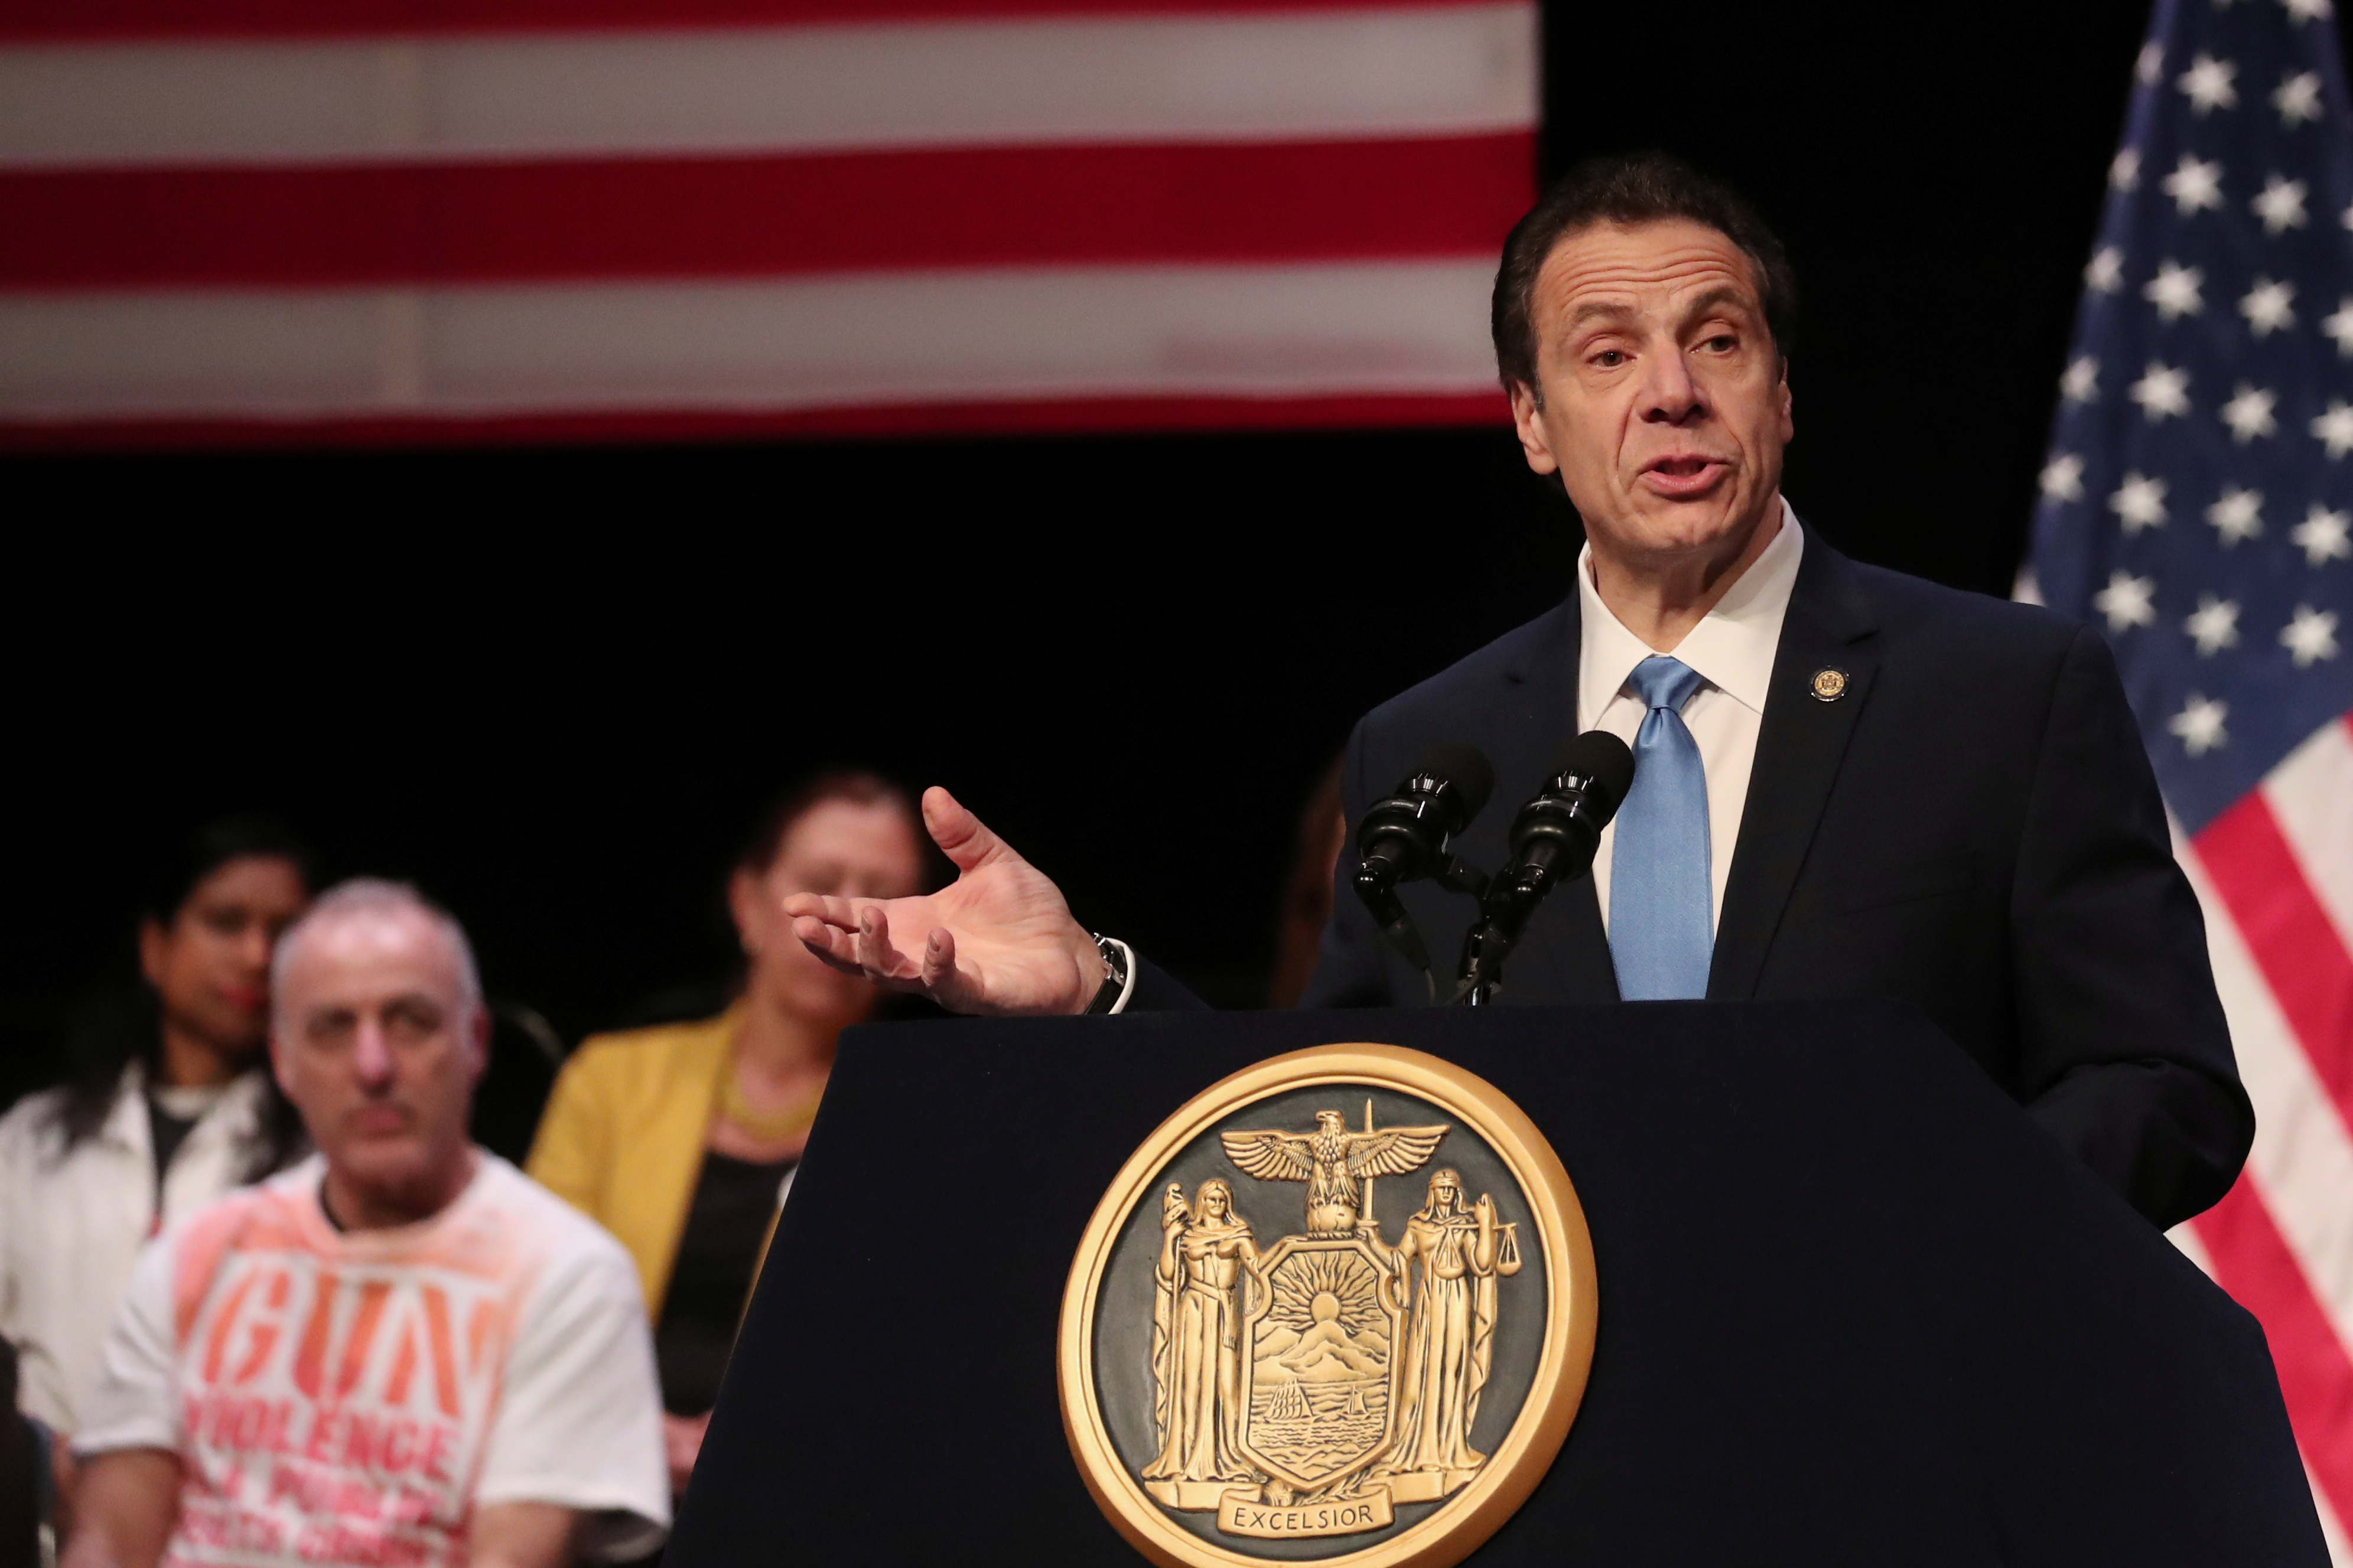 New York Governor Andrew Cuomo speaks before signing the Red Flag bill, also known as the Extreme Risk Protection Order bill, in New York